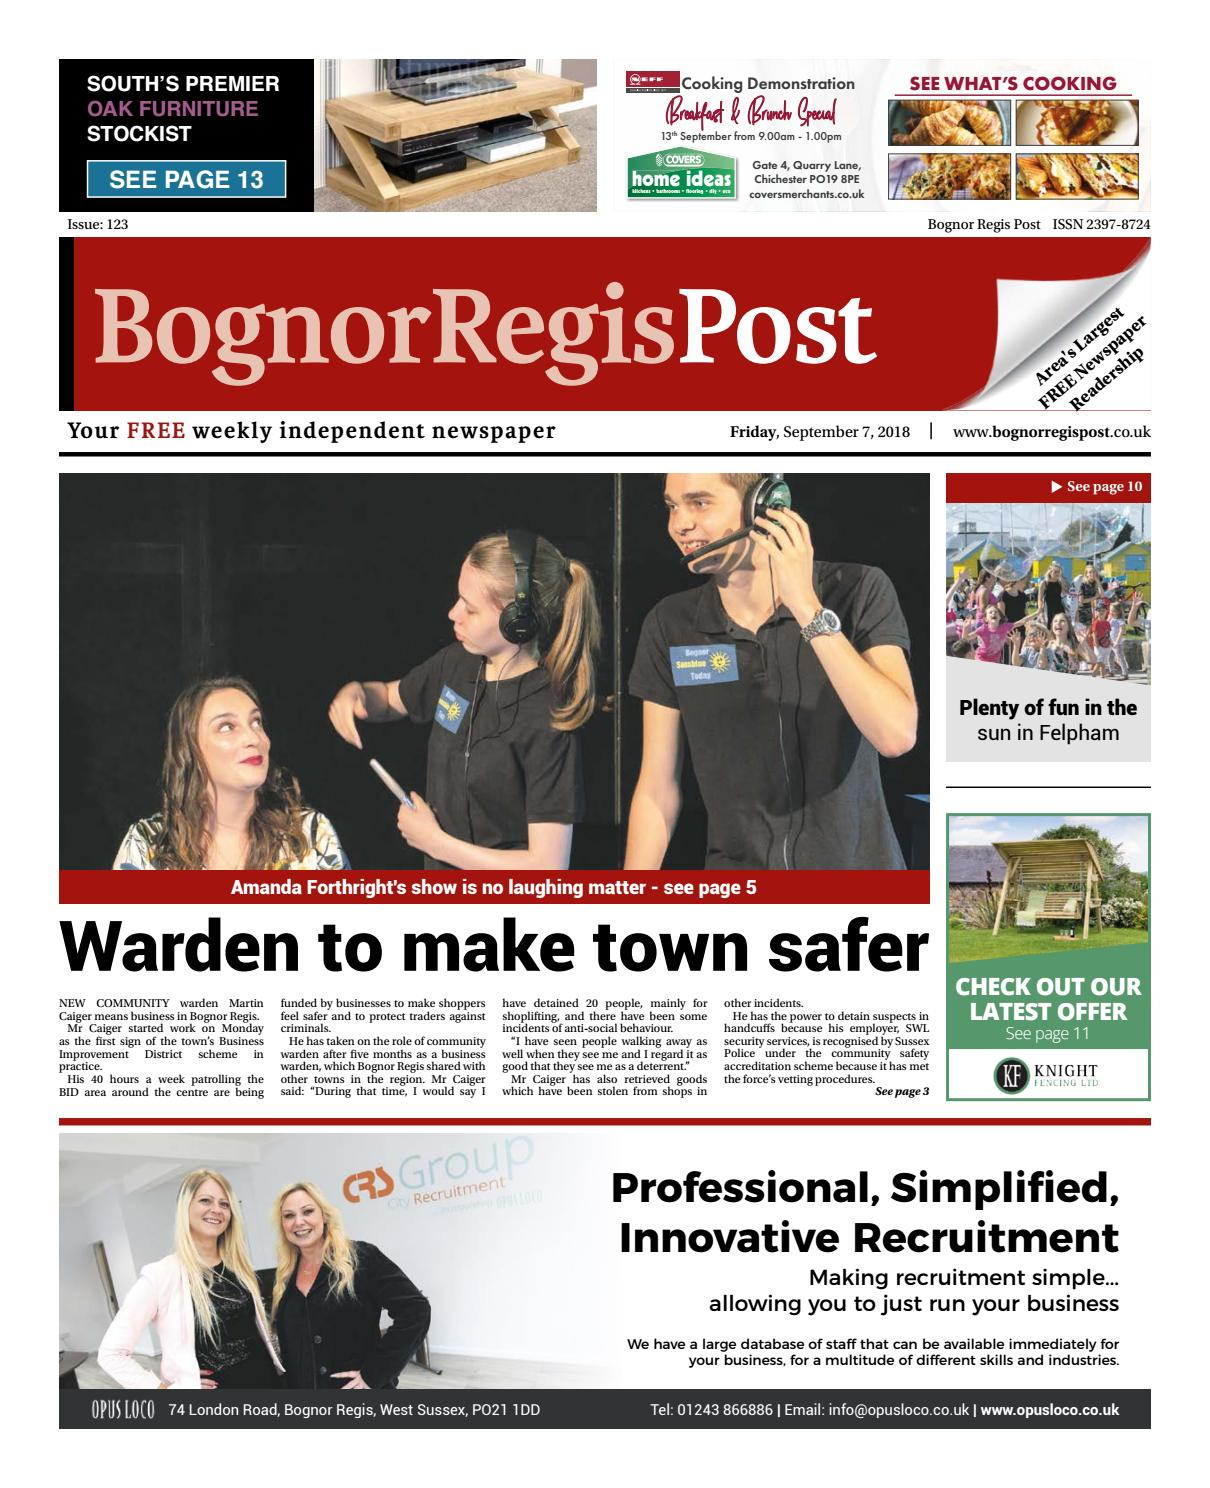 Bognor Regis Post Issue 123 by Post Newspapers - issuu